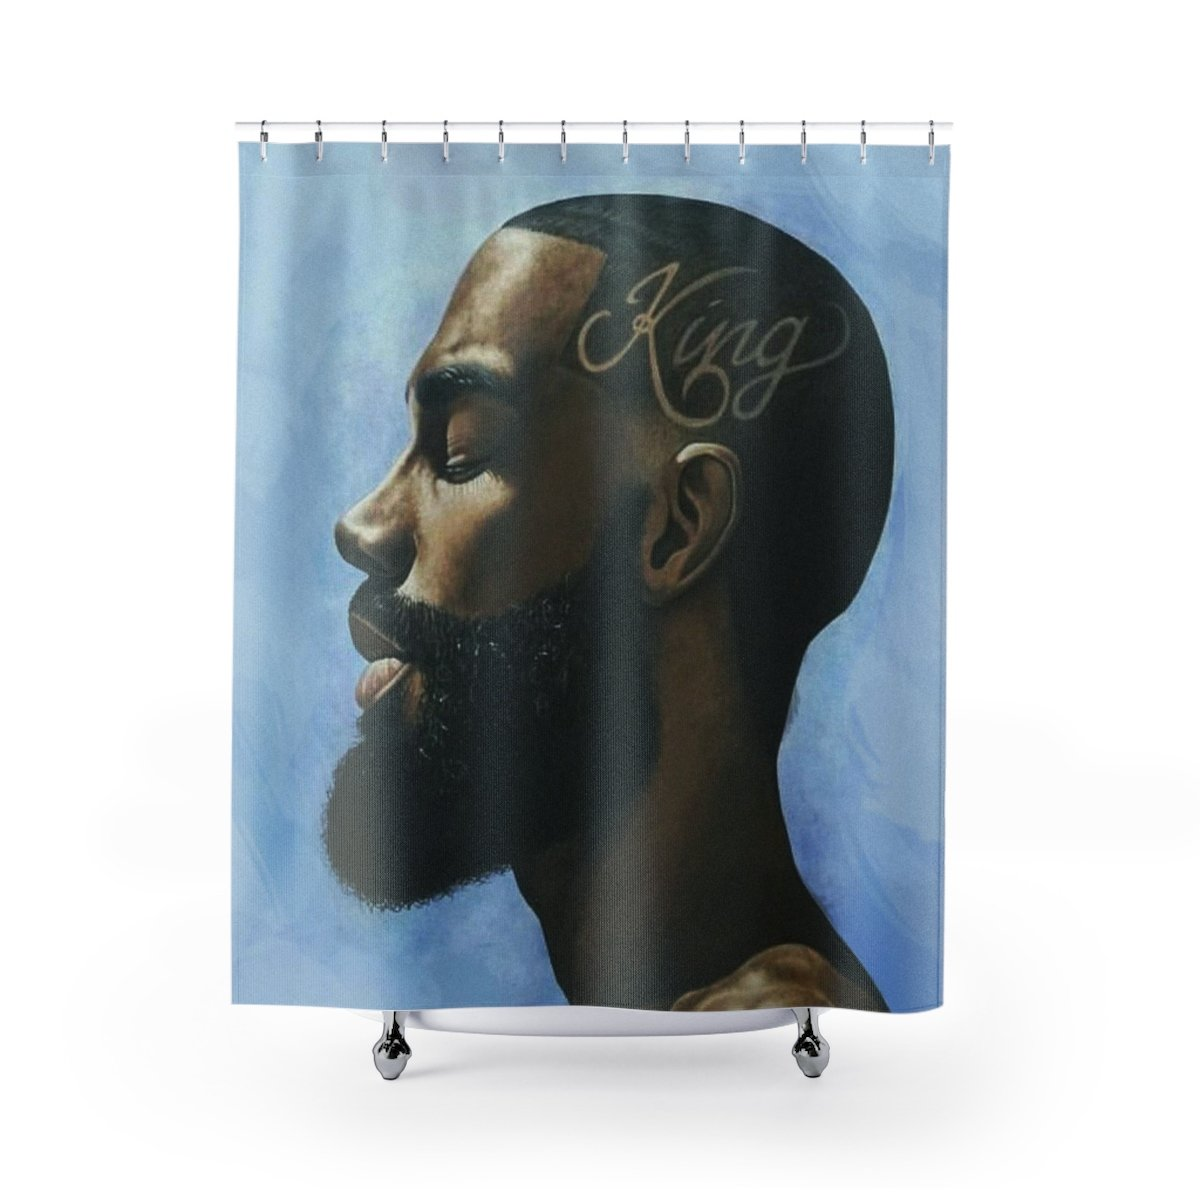 NEW King Shower Curtain